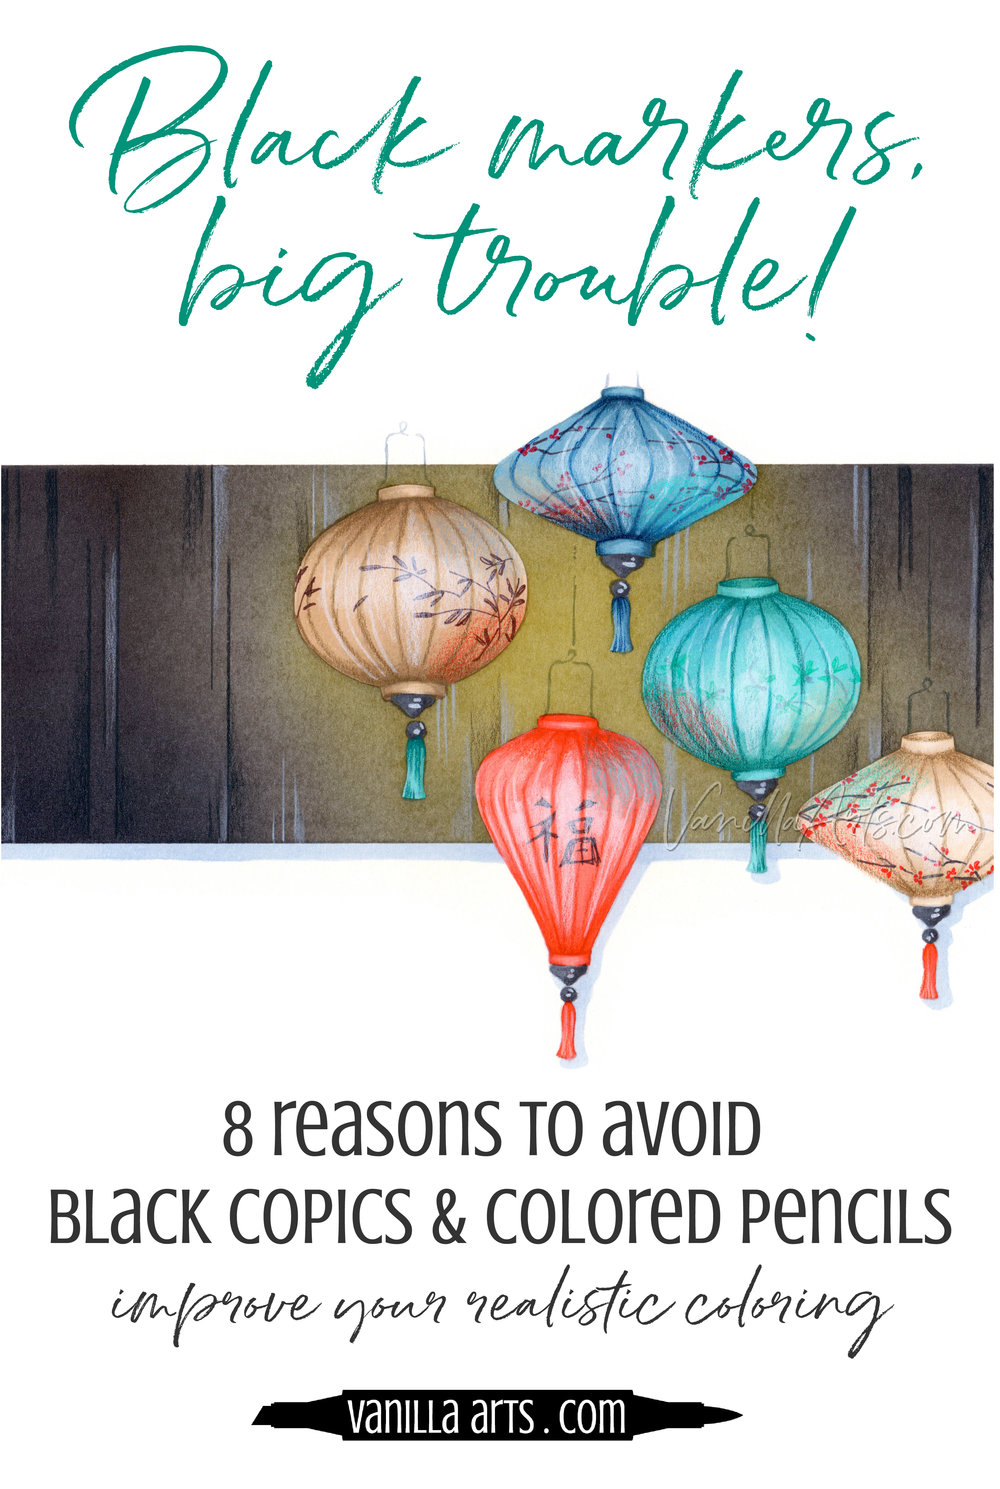 You're in danger every time you pick up a black marker, pen, or colored pencil! 9 reasons to avoid using black in your Copic Marker and colored pencil projects. | VanillaArts.com | #copicmarker #coloredpencil #coloring #howtocolor #realisticcol